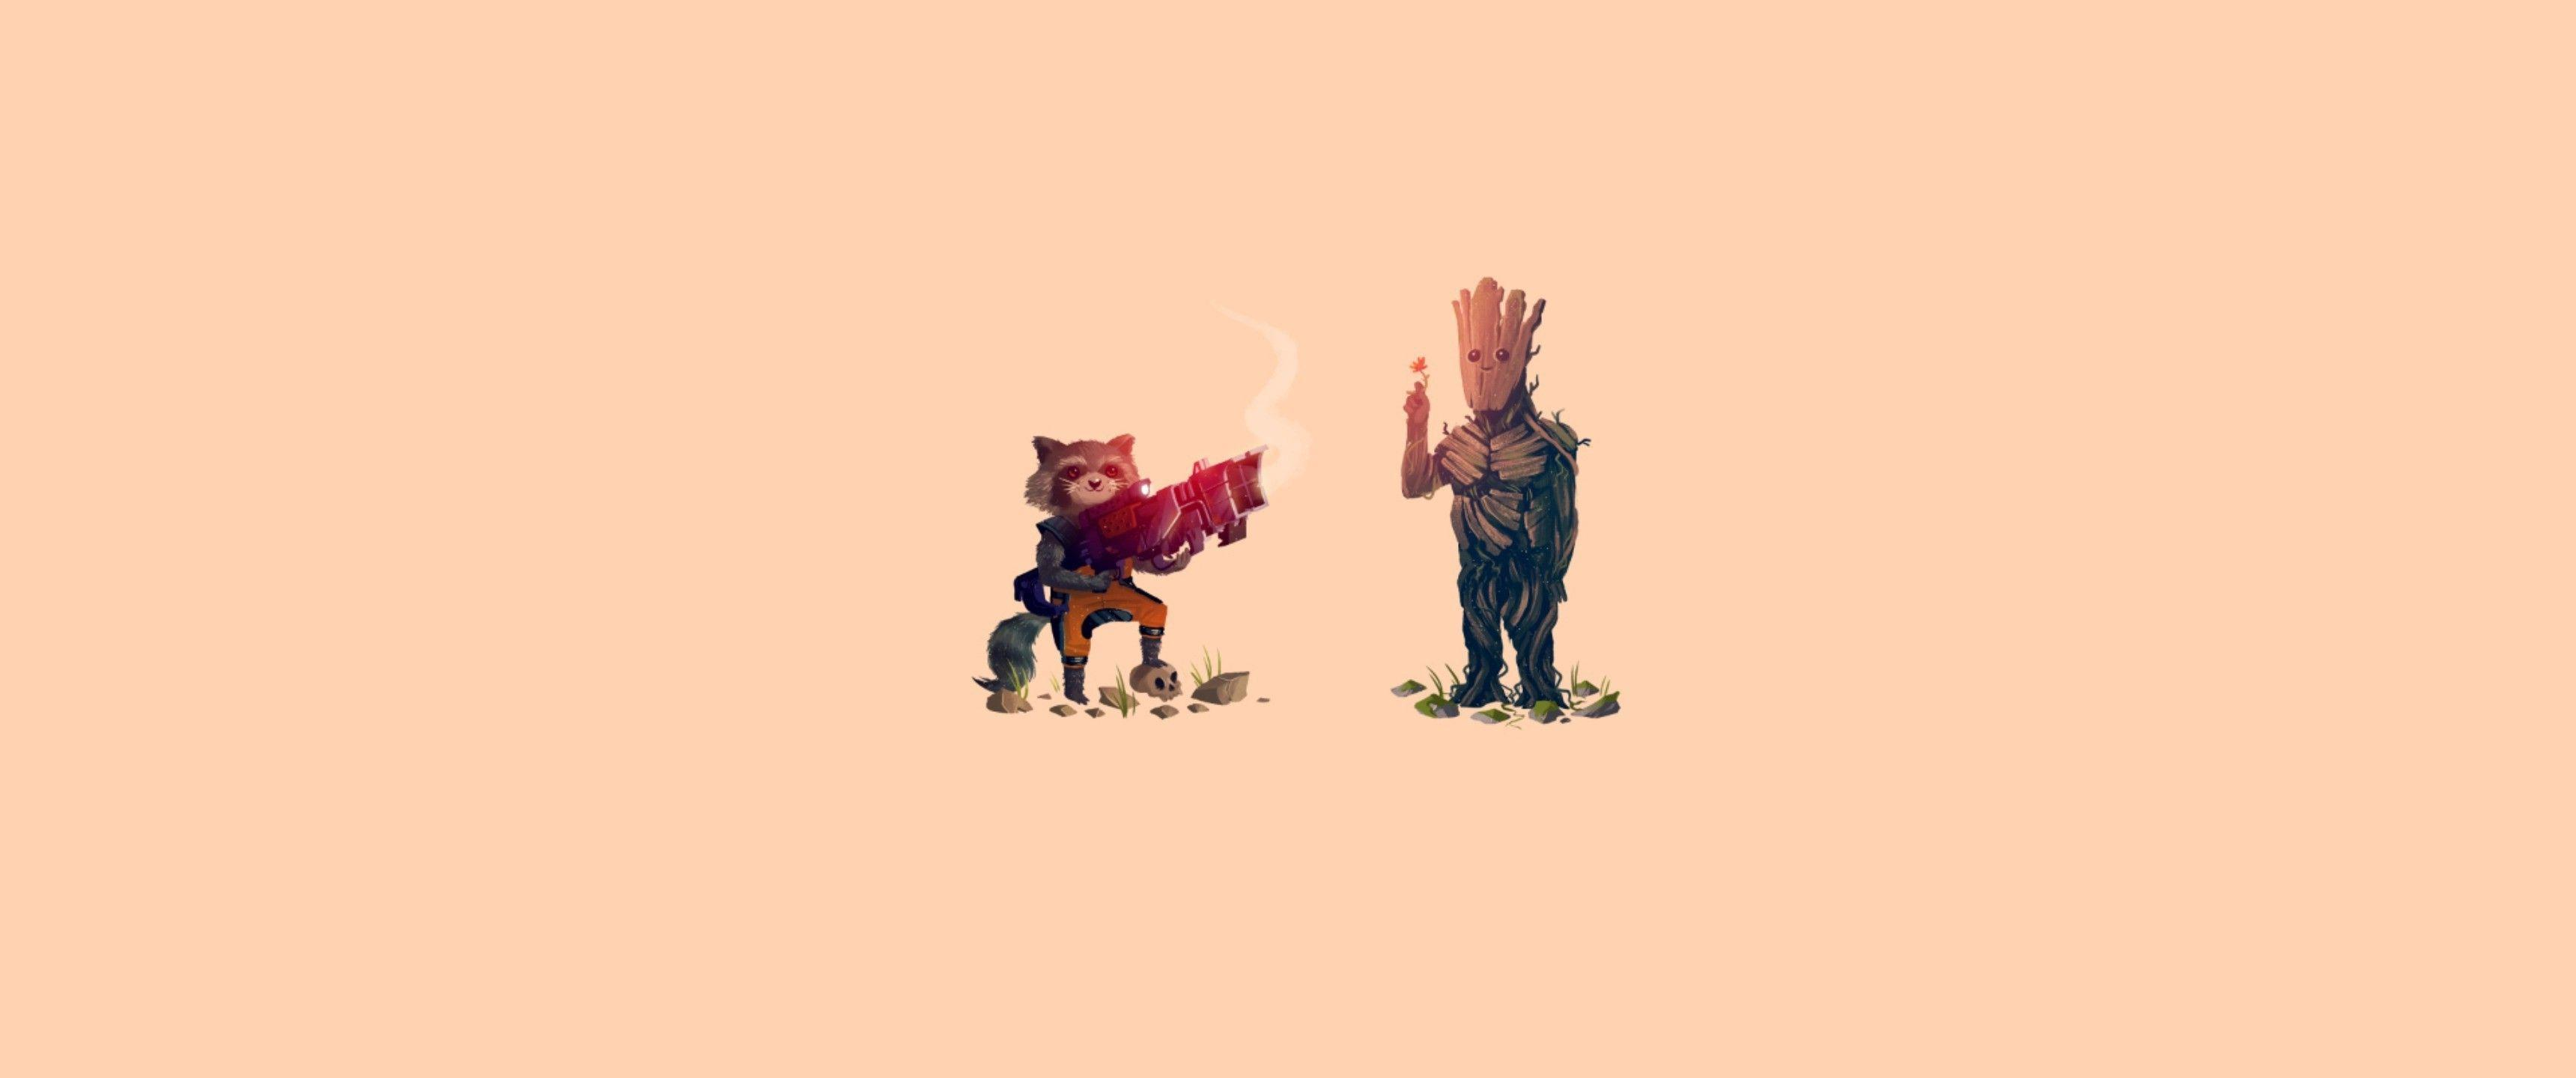 Guardians Of The Galaxy, Groot, Rocket Raccoon Wallpapers HD ...